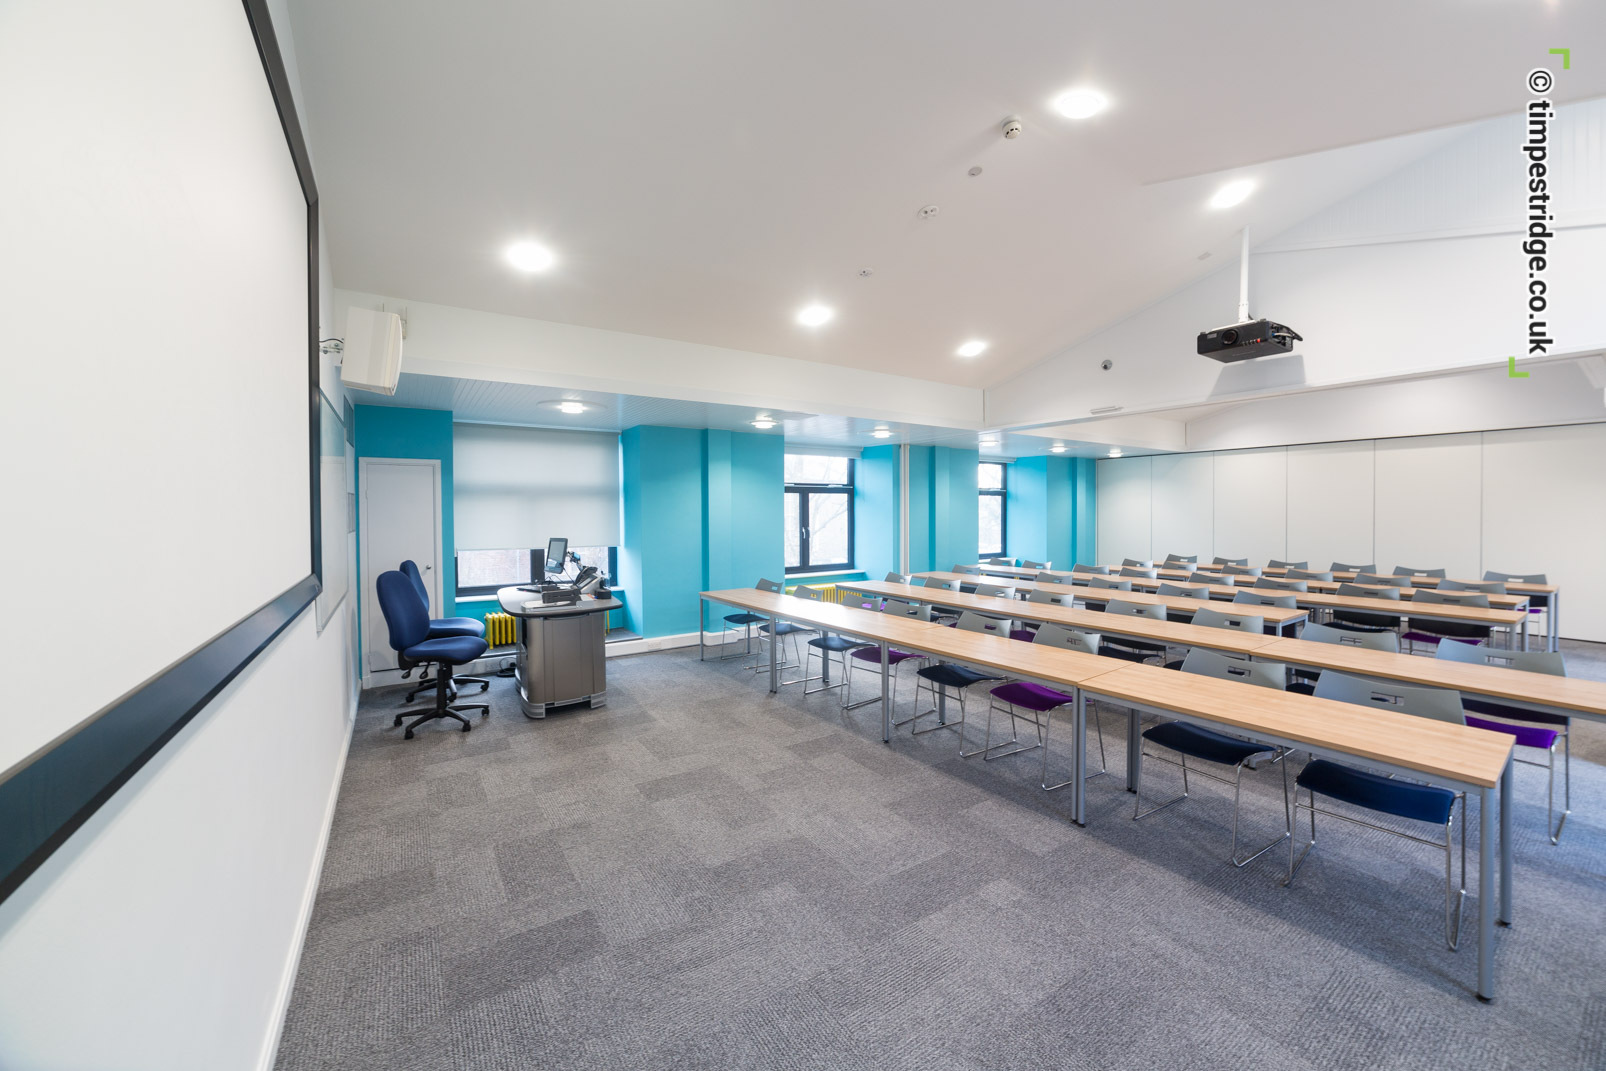 Atkins interior design at university of exeter for Designer east architectural engineering design consultants company